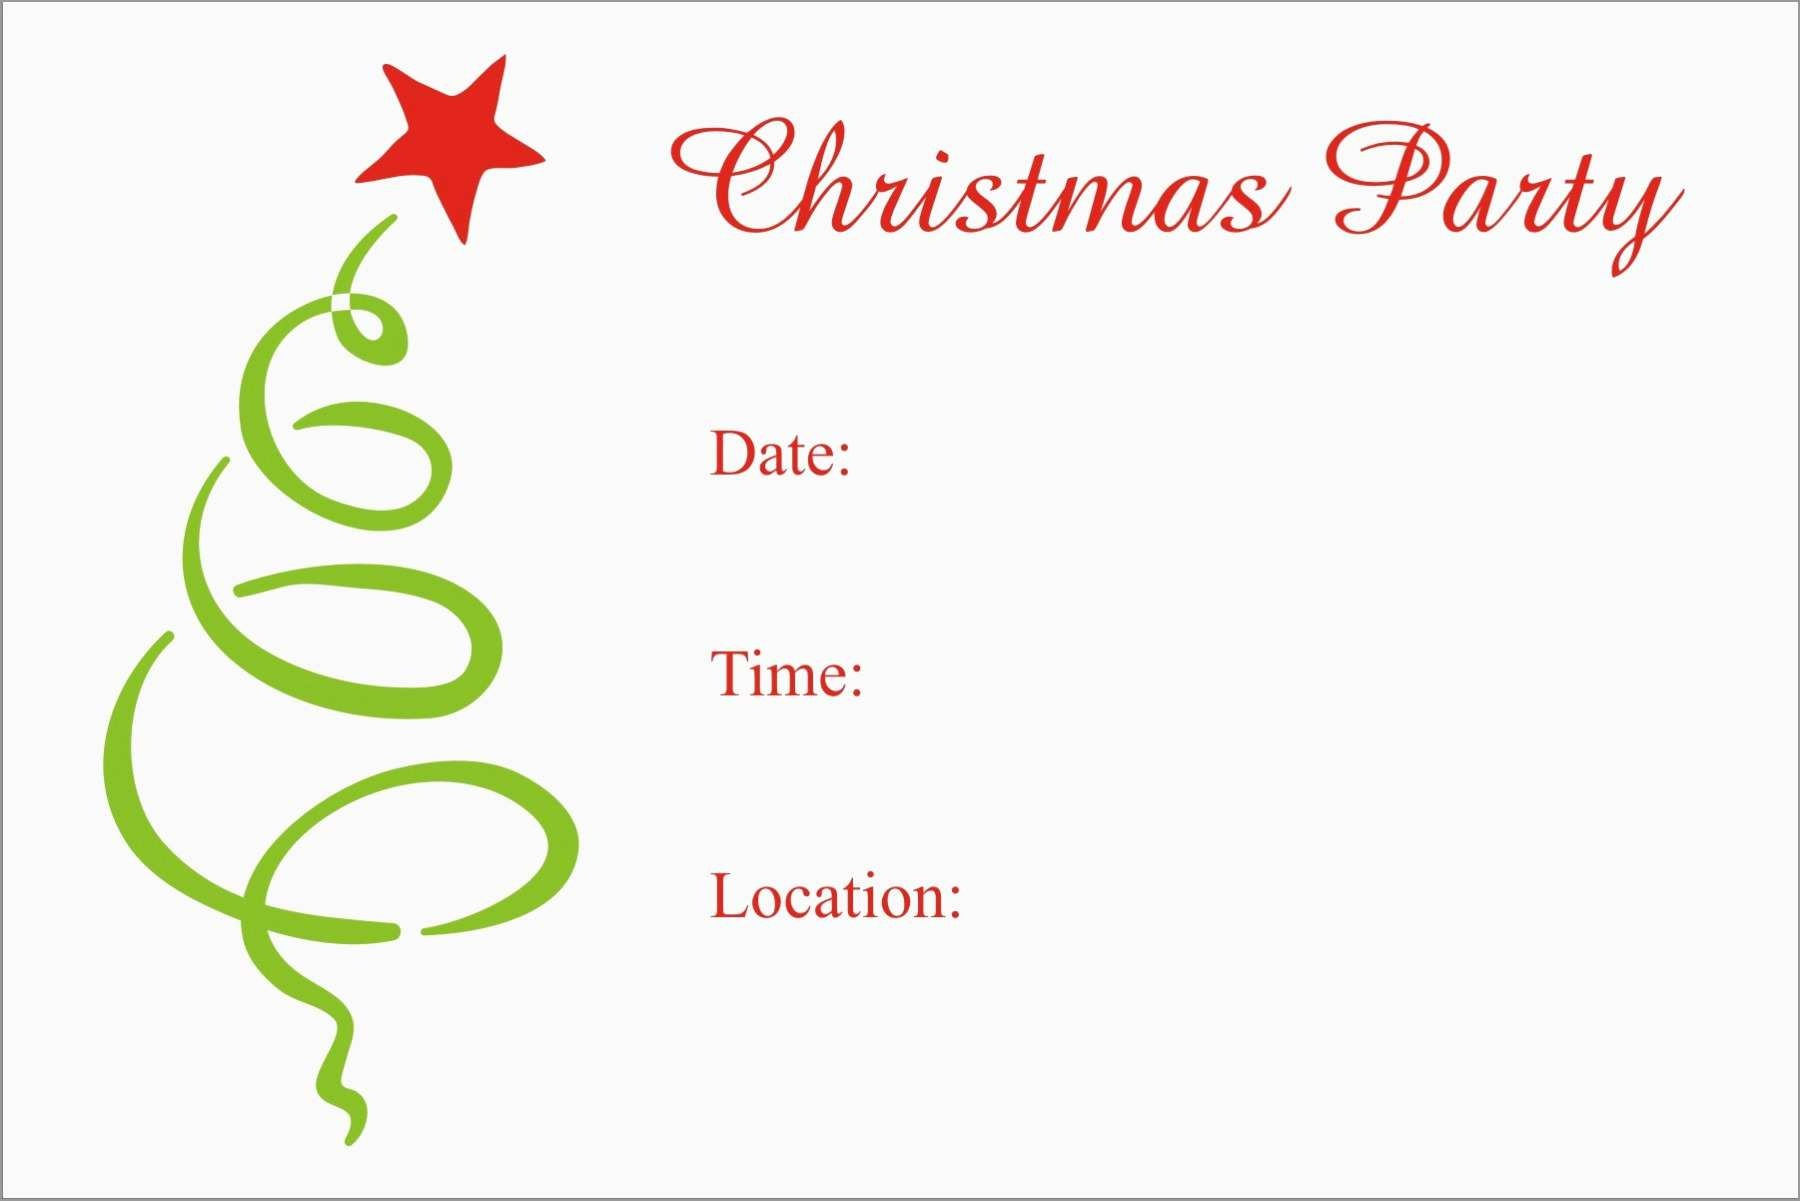 Lovely Christmas Party Invitation Templates Free Printable | Best Of - Christmas Party Invitation Templates Free Printable